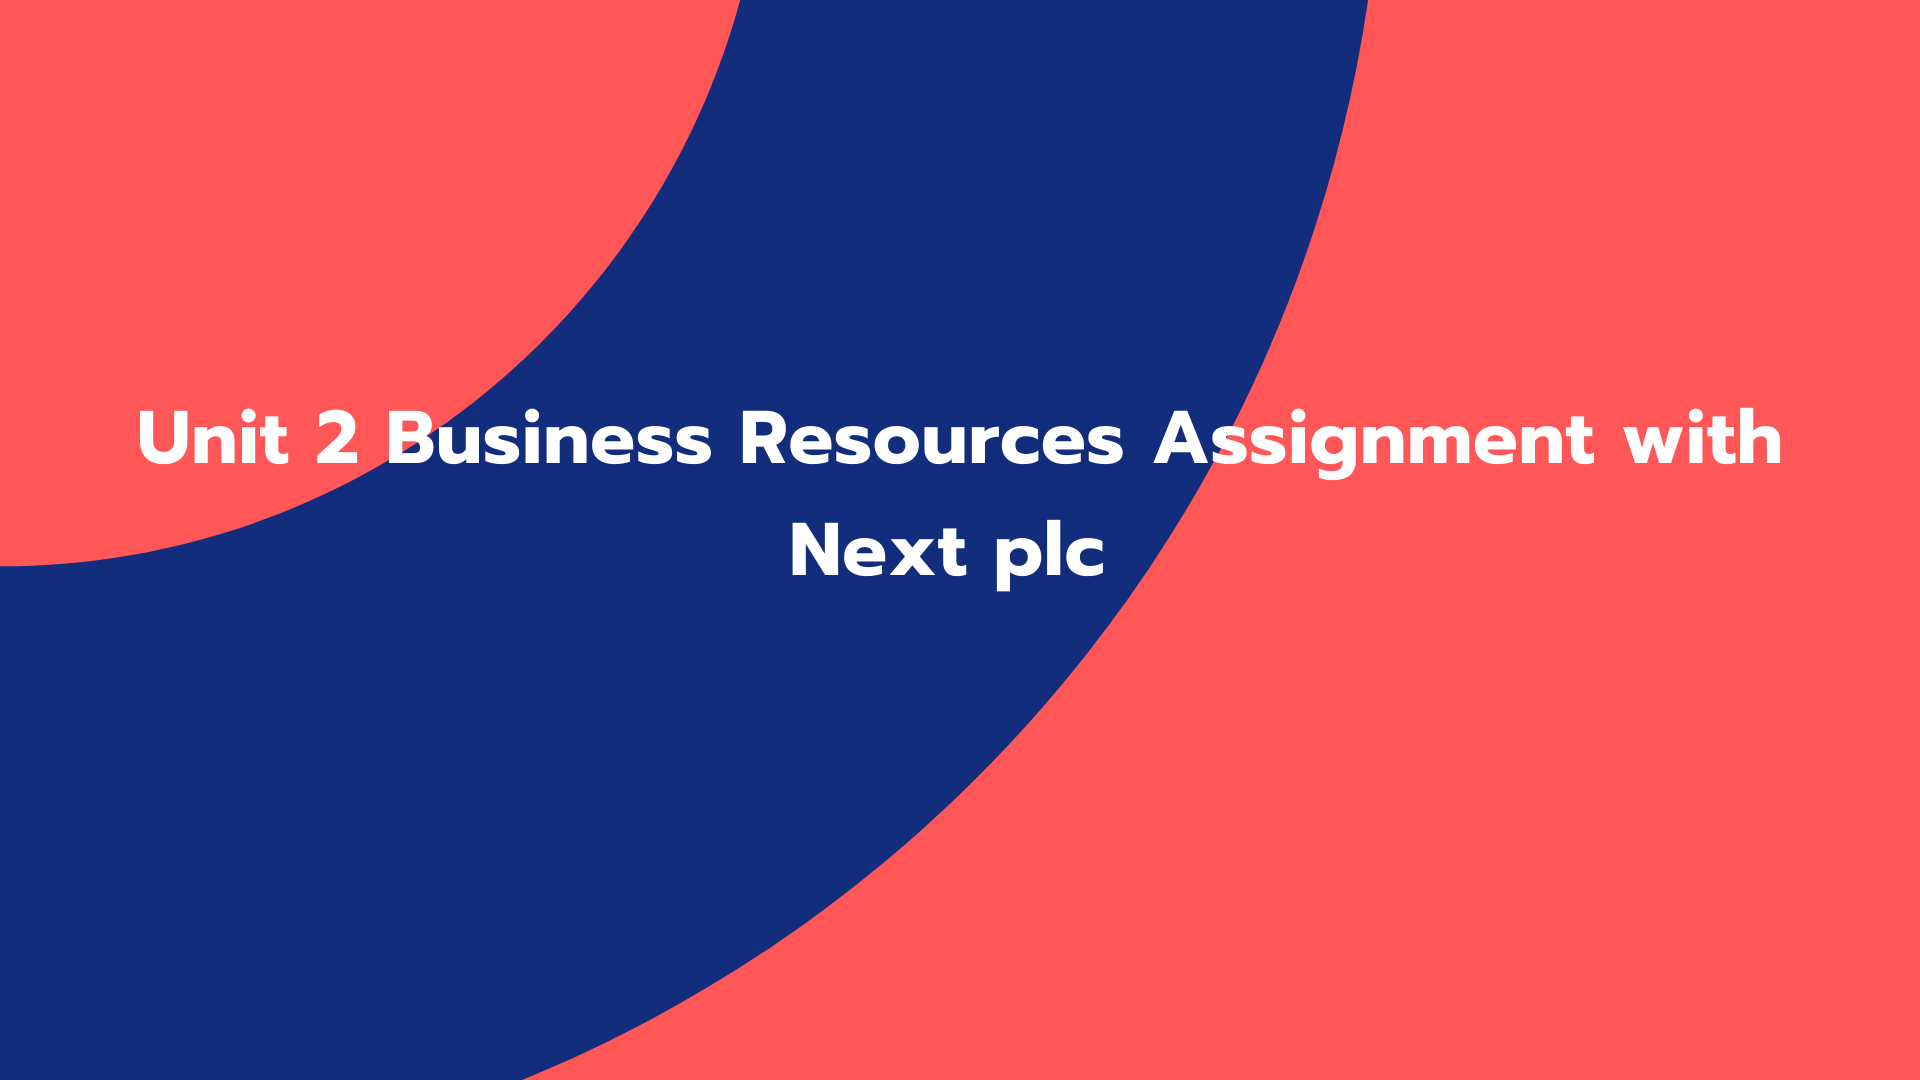 Unit 2 Business Resources Assignment with Next plc